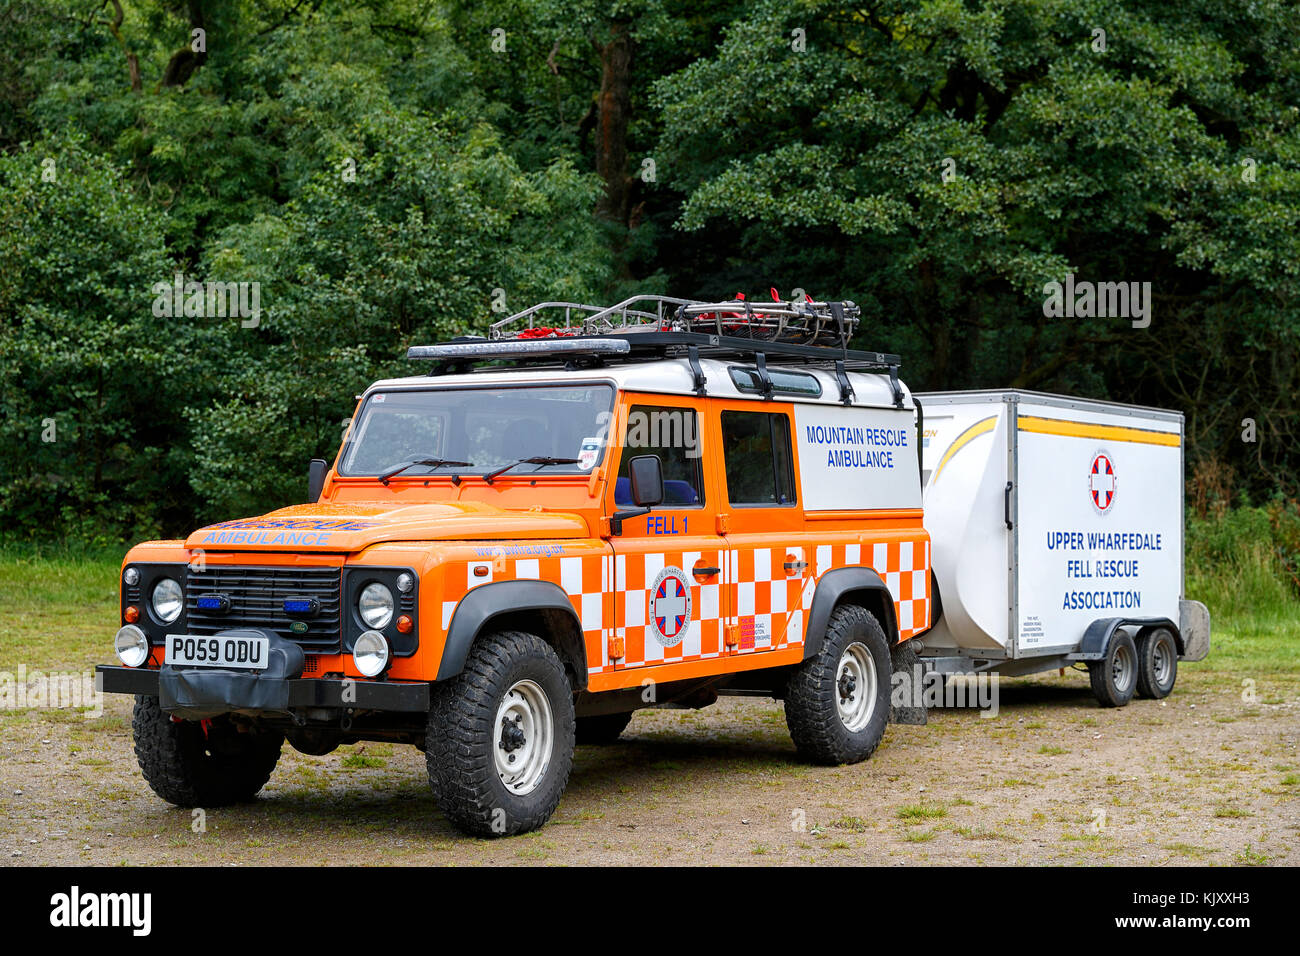 Upper Wharfedale Fell Rescue Vehicle on an Emergency call-out in the Washburn Valley area of Nidderdale during their - Stock Image